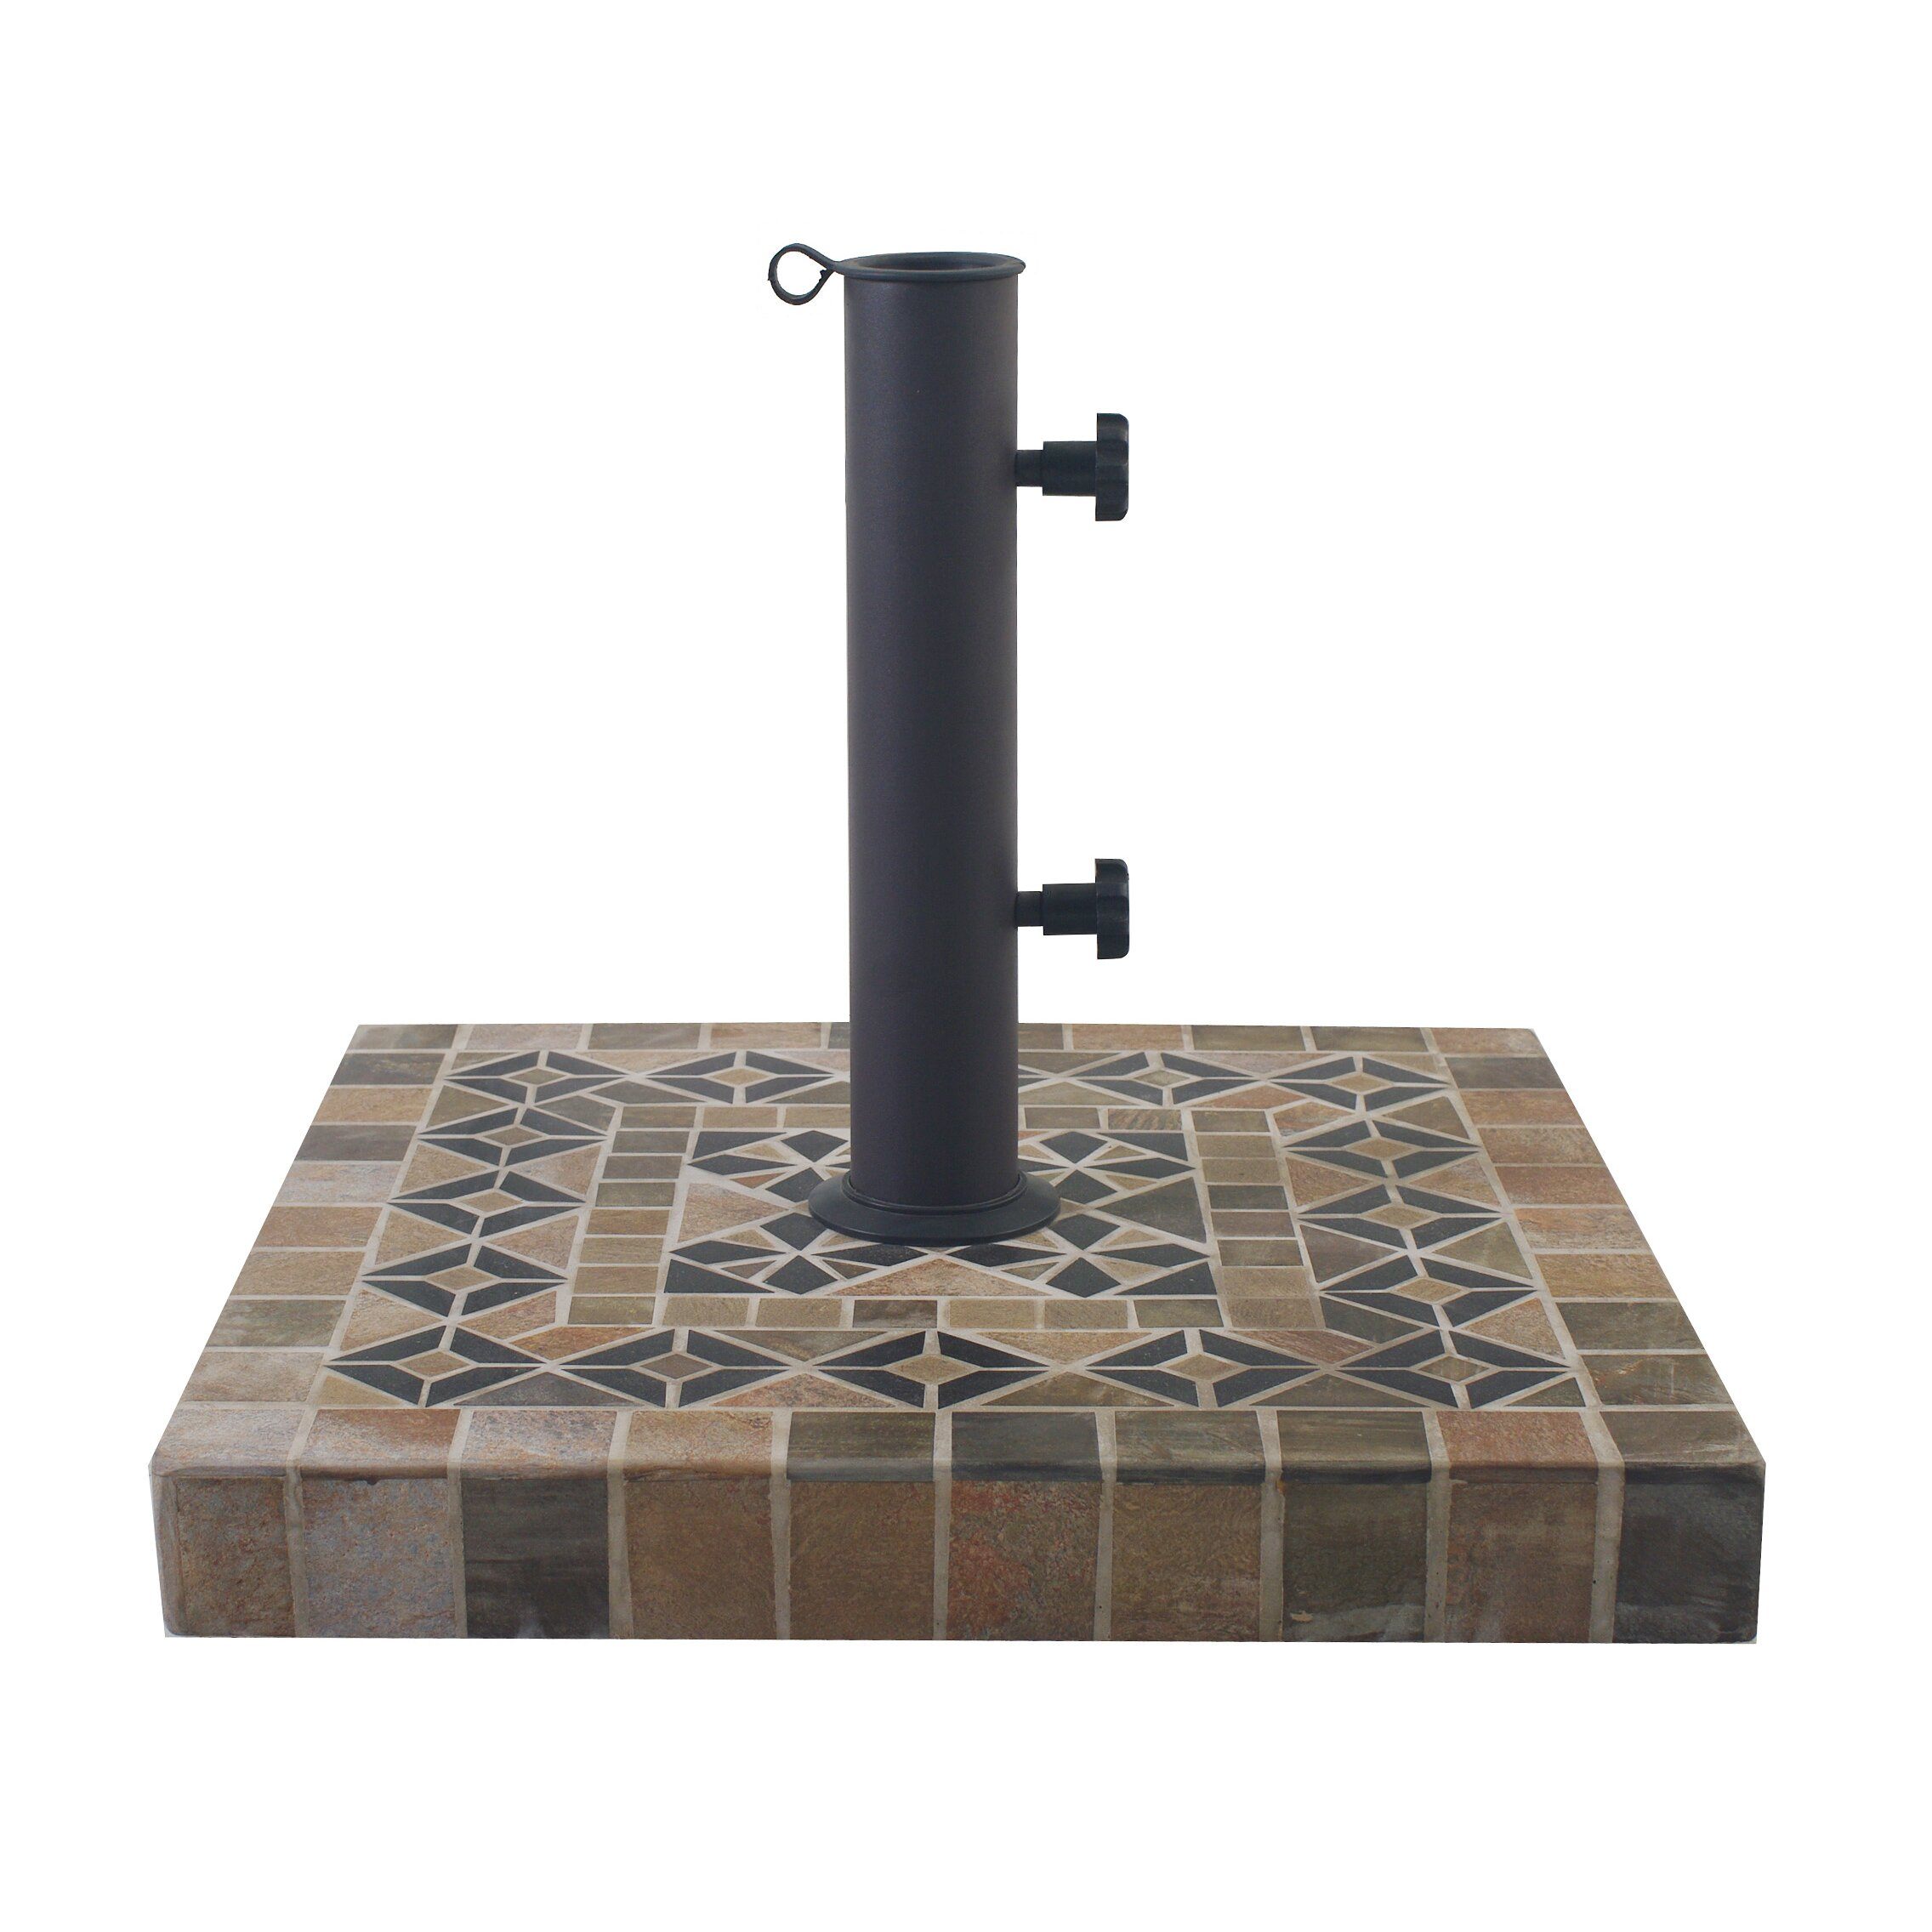 Adirondack chairs clipartsilhouette free images at clkercom - Outdoor Outdoor Shades Amp Structures Concrete Patio Umbrella Stands